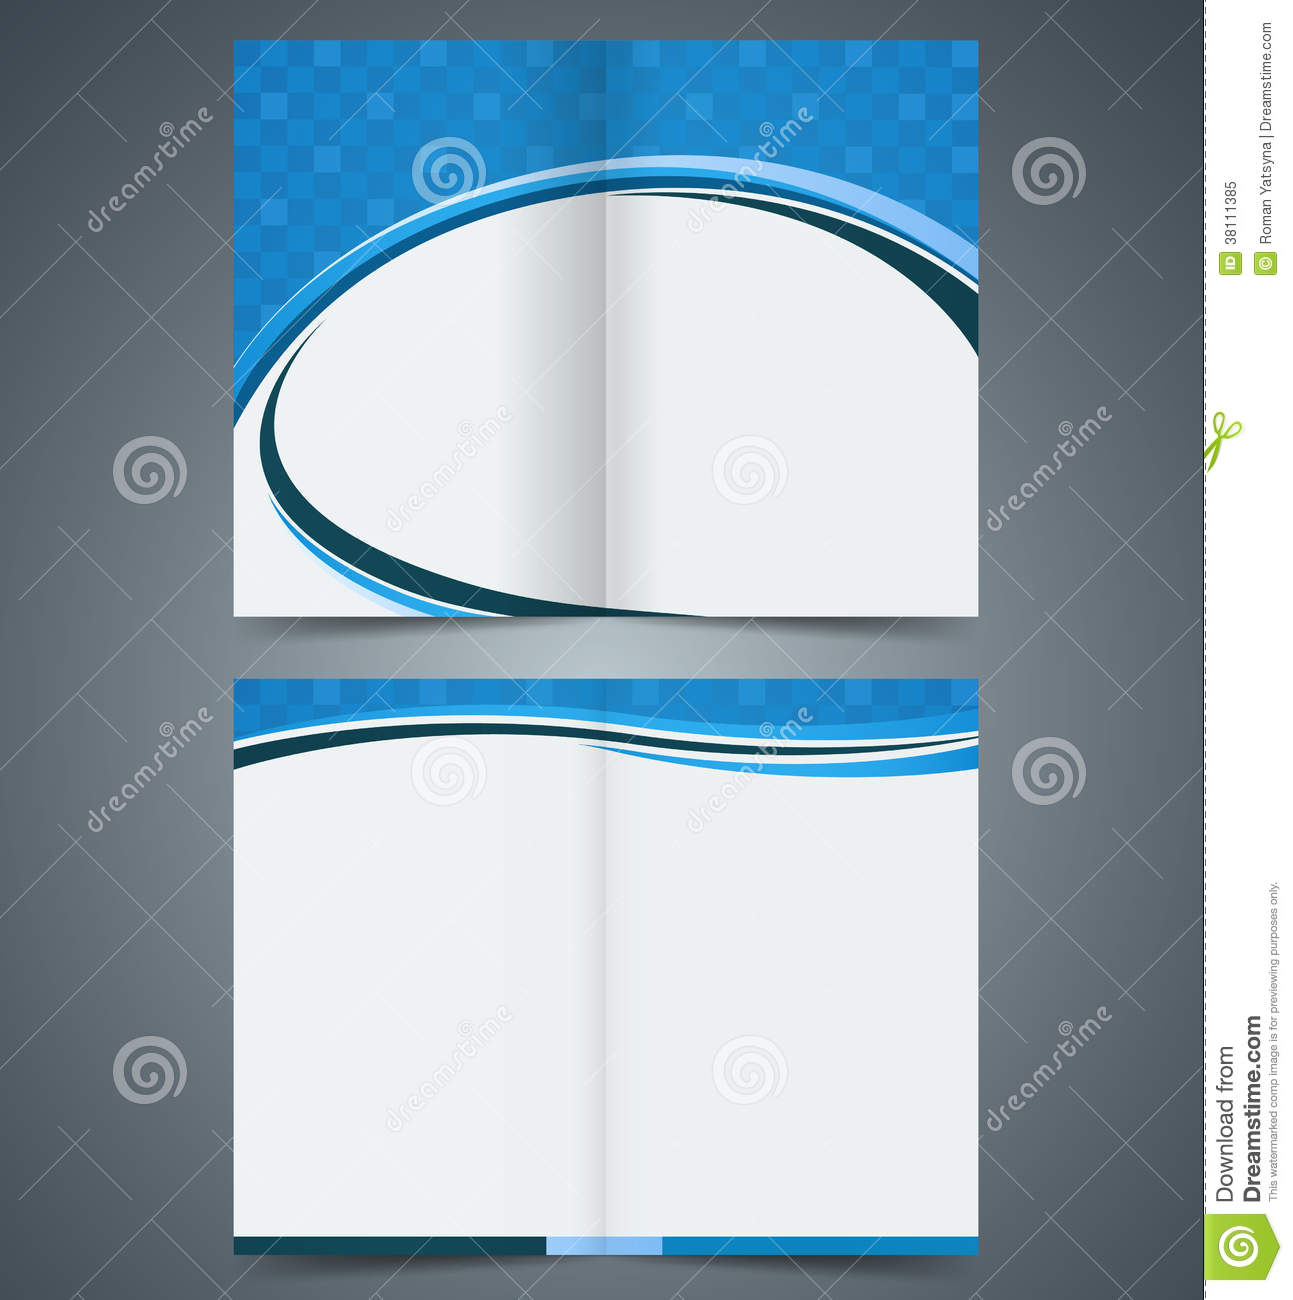 Bifold brochure template design business leaflet stock vector bifold brochure template design business leaflet flashek Choice Image